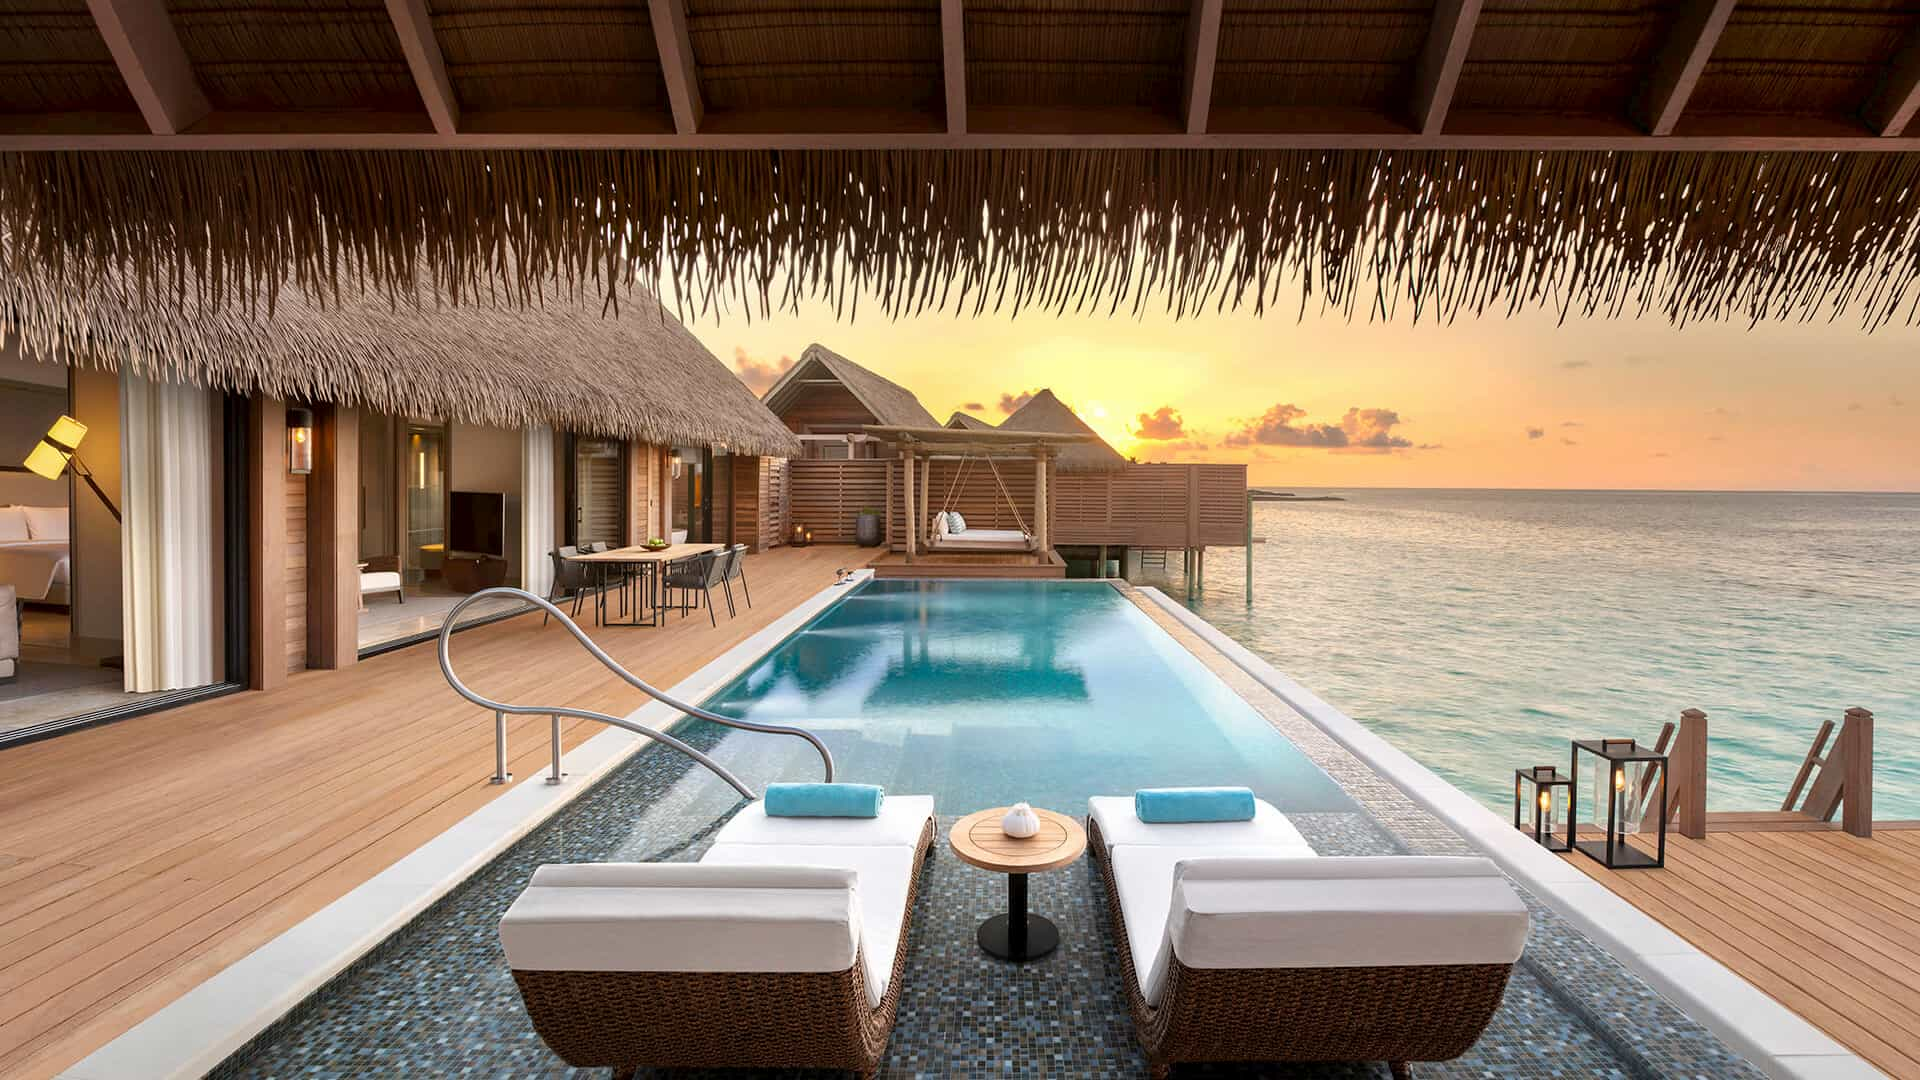 Resort Maldive Waldorf Astoria Maldives grand overwater  villa